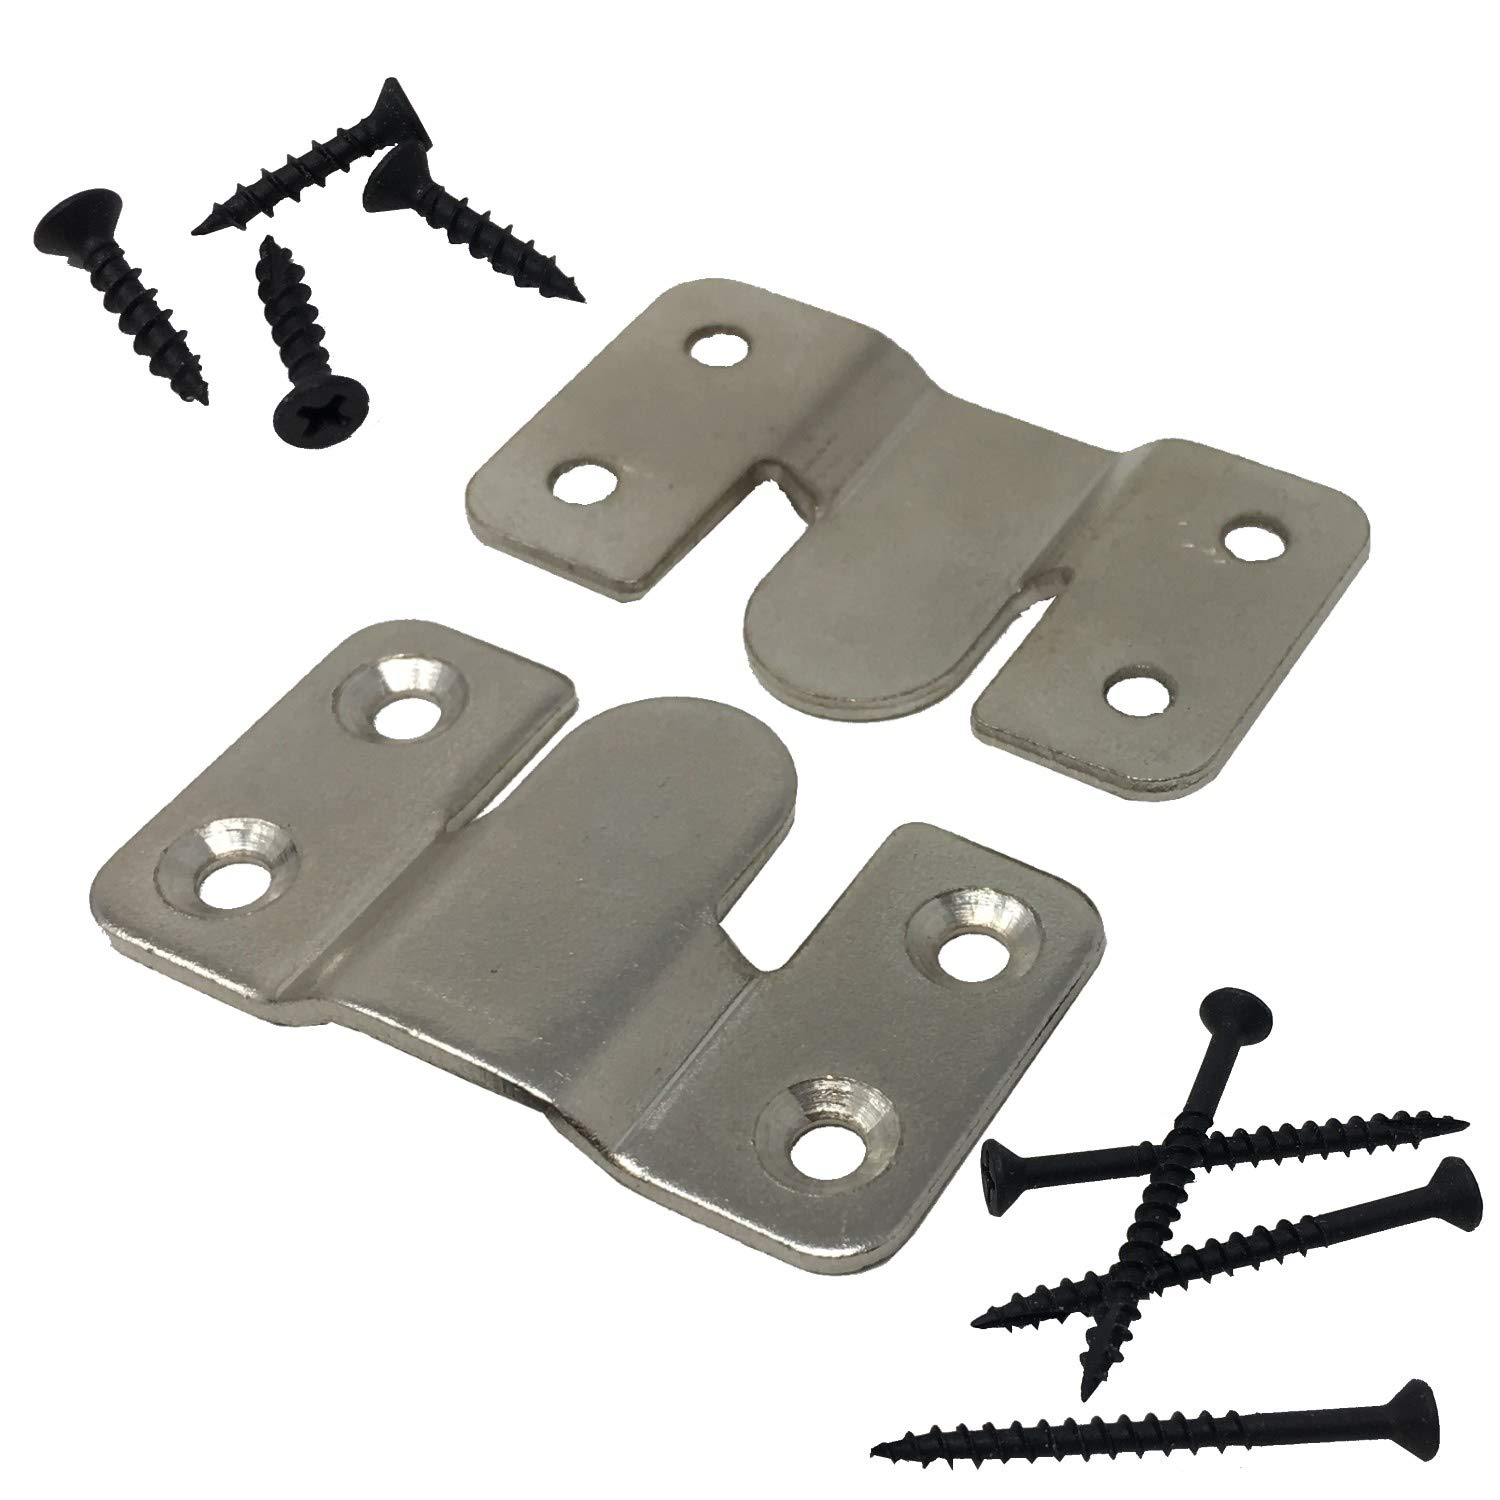 Interlocking Z Clips for Flush Mounting Pictures, Head Boards, Wall Panels - 10 Sets